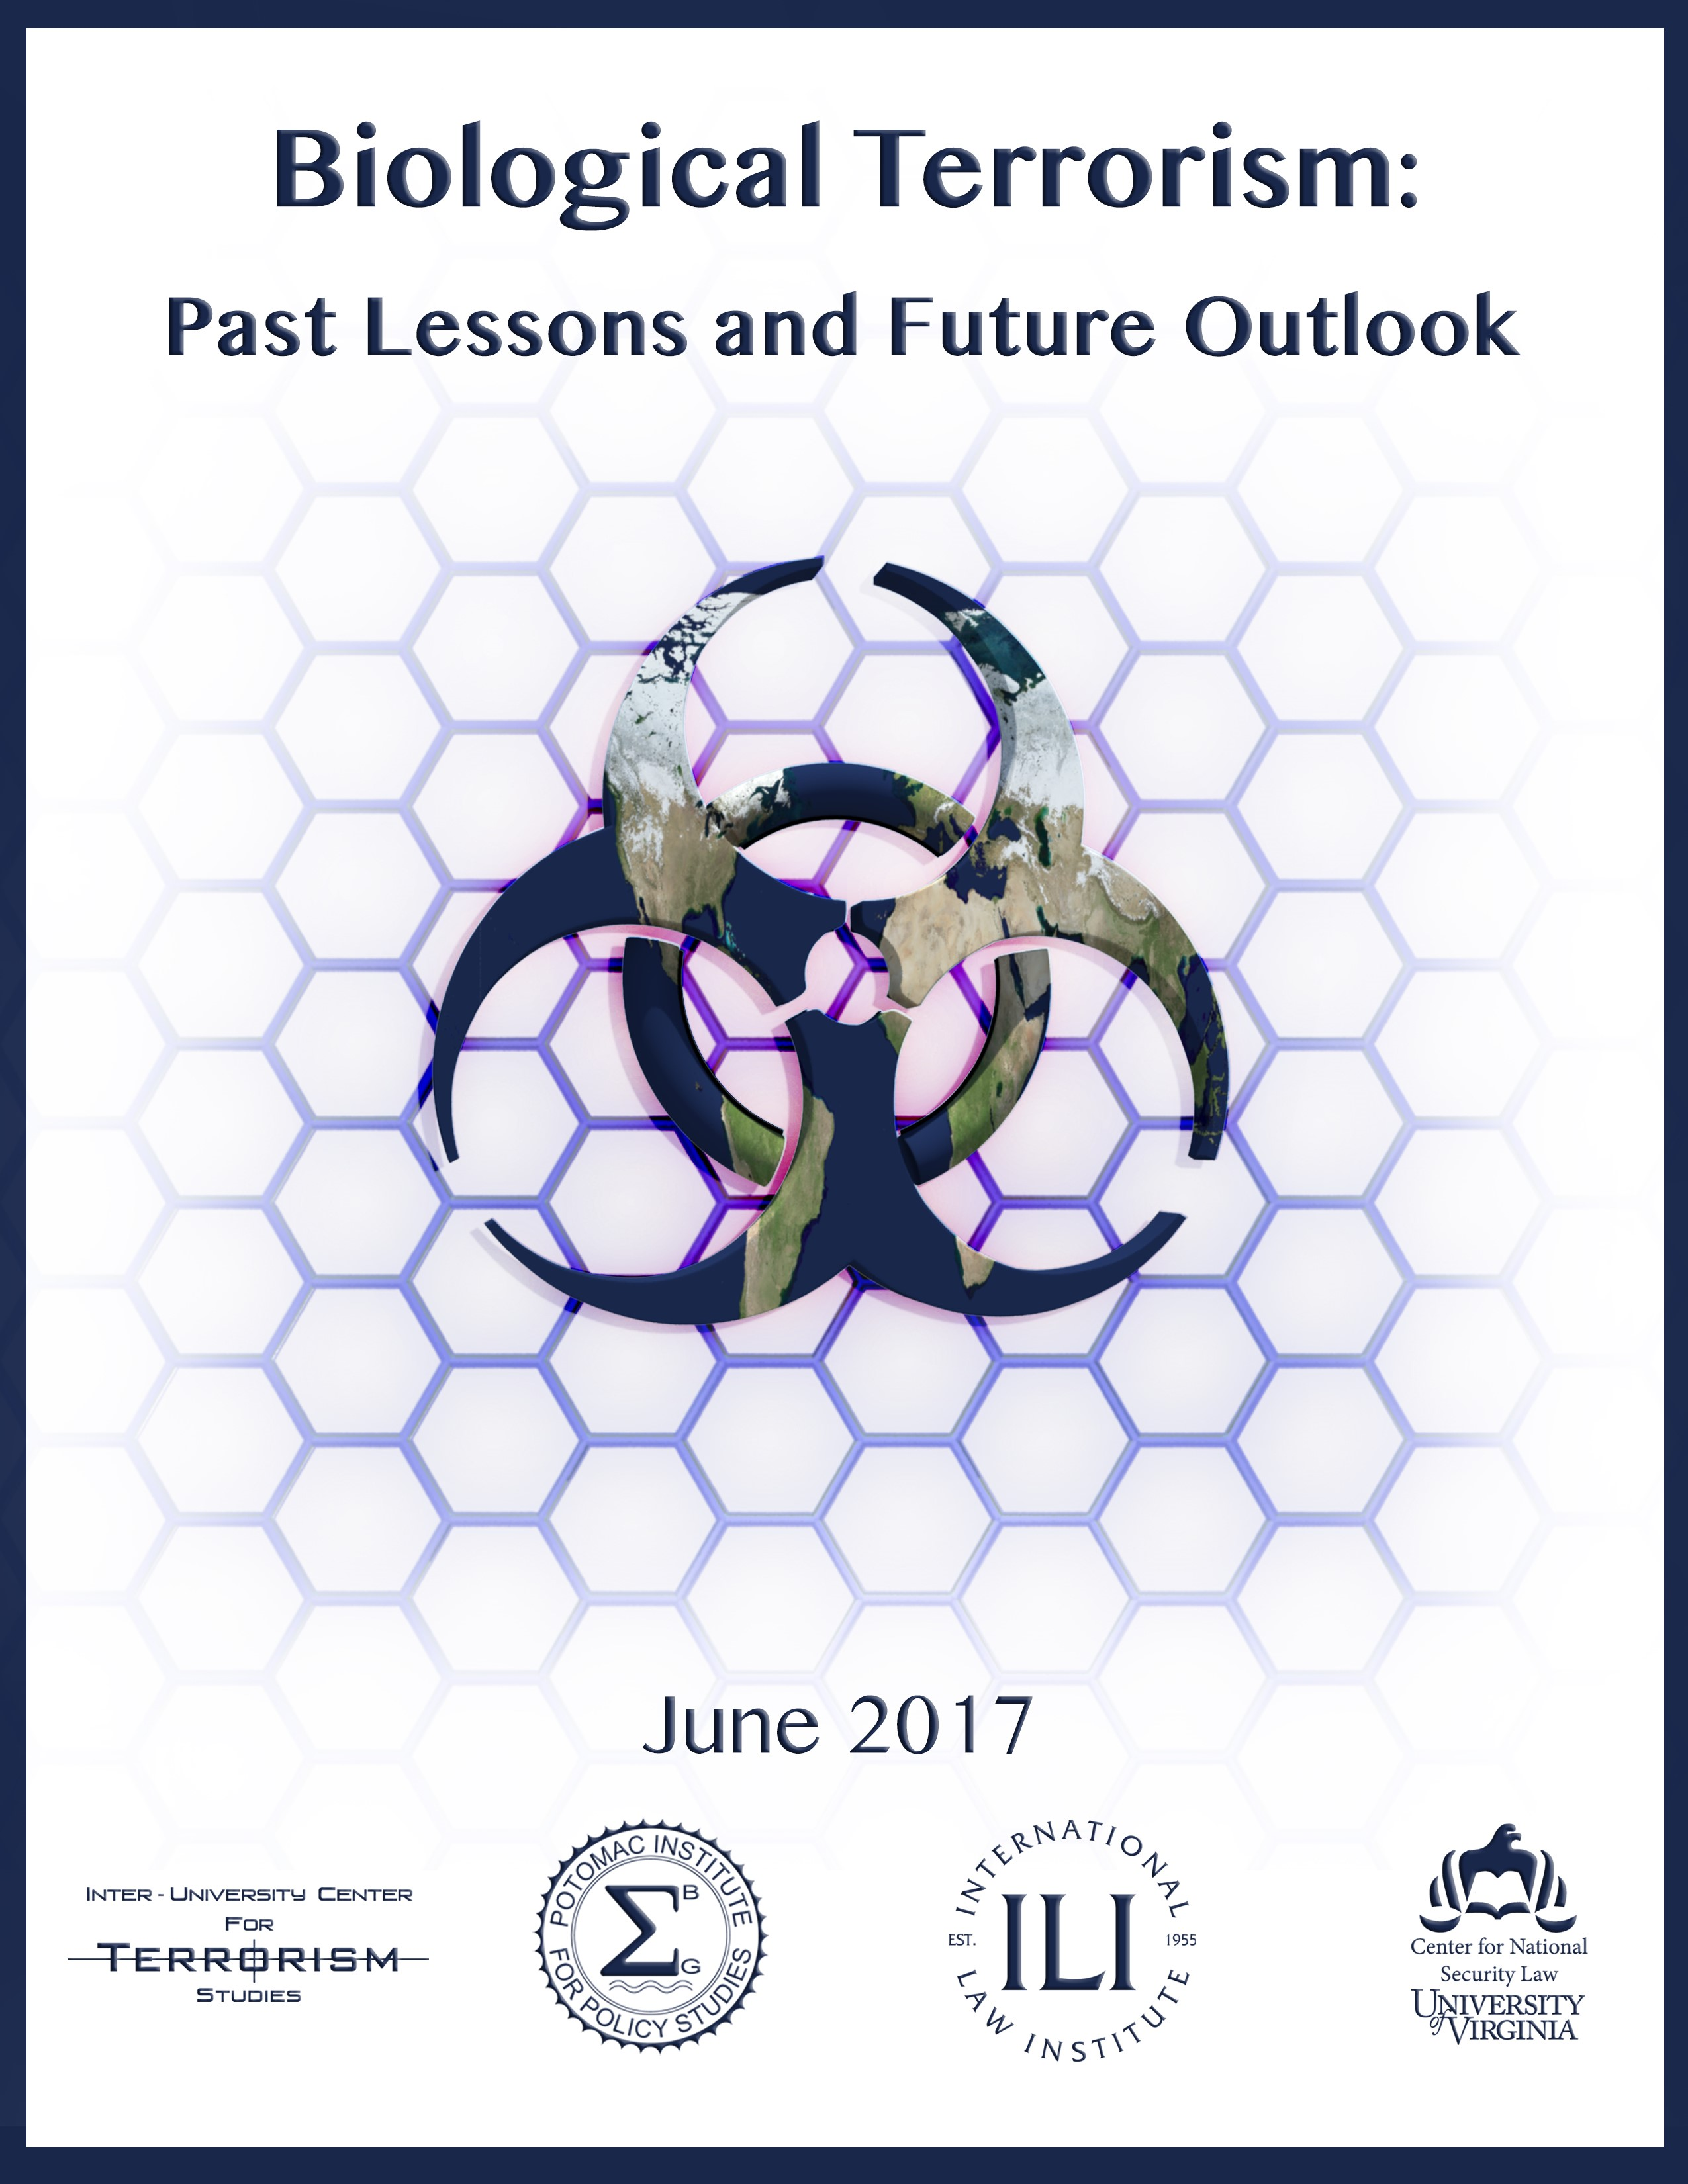 Biological Terrorism: Past Lessons and Future Outlook